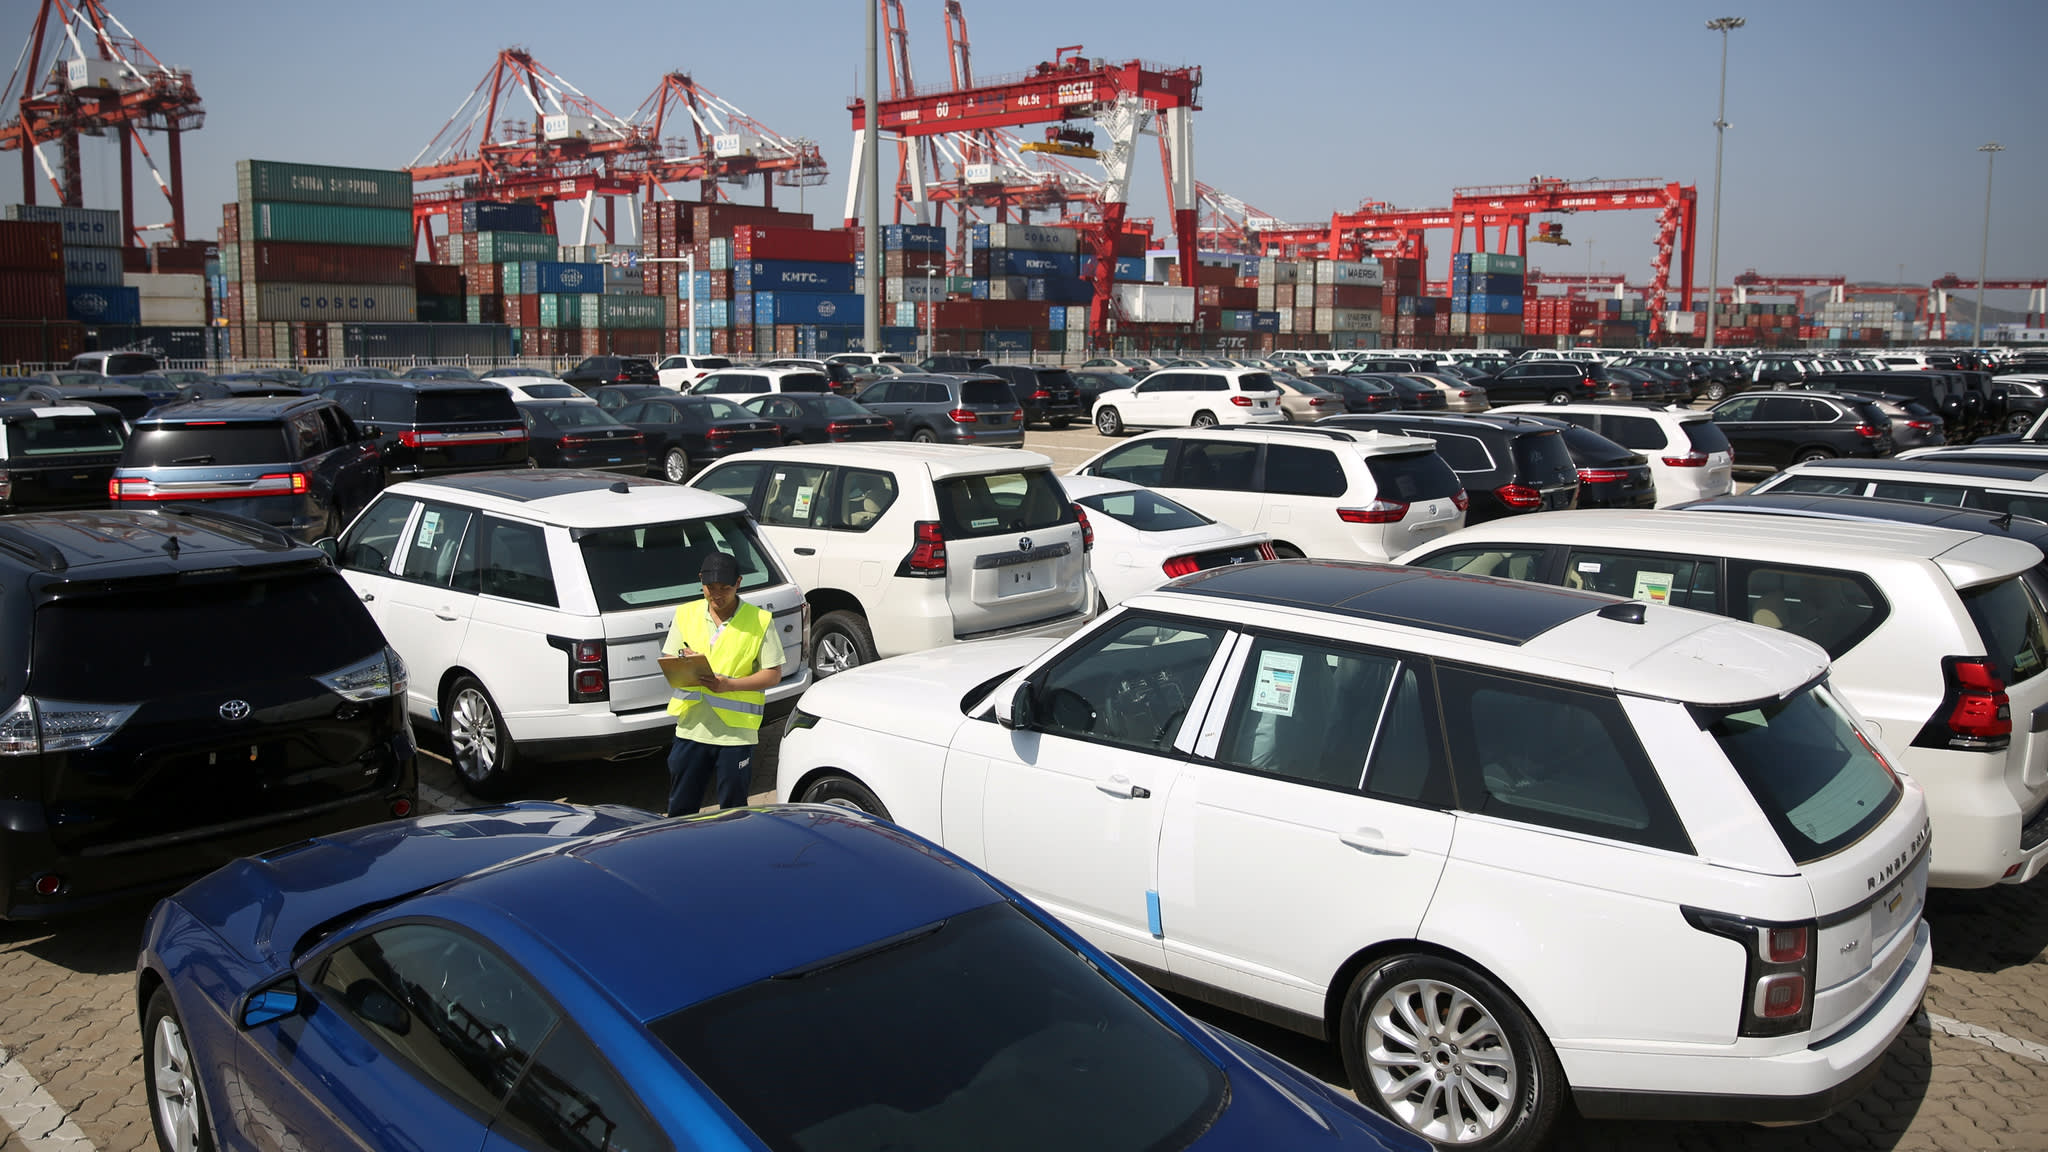 Used cars in China.